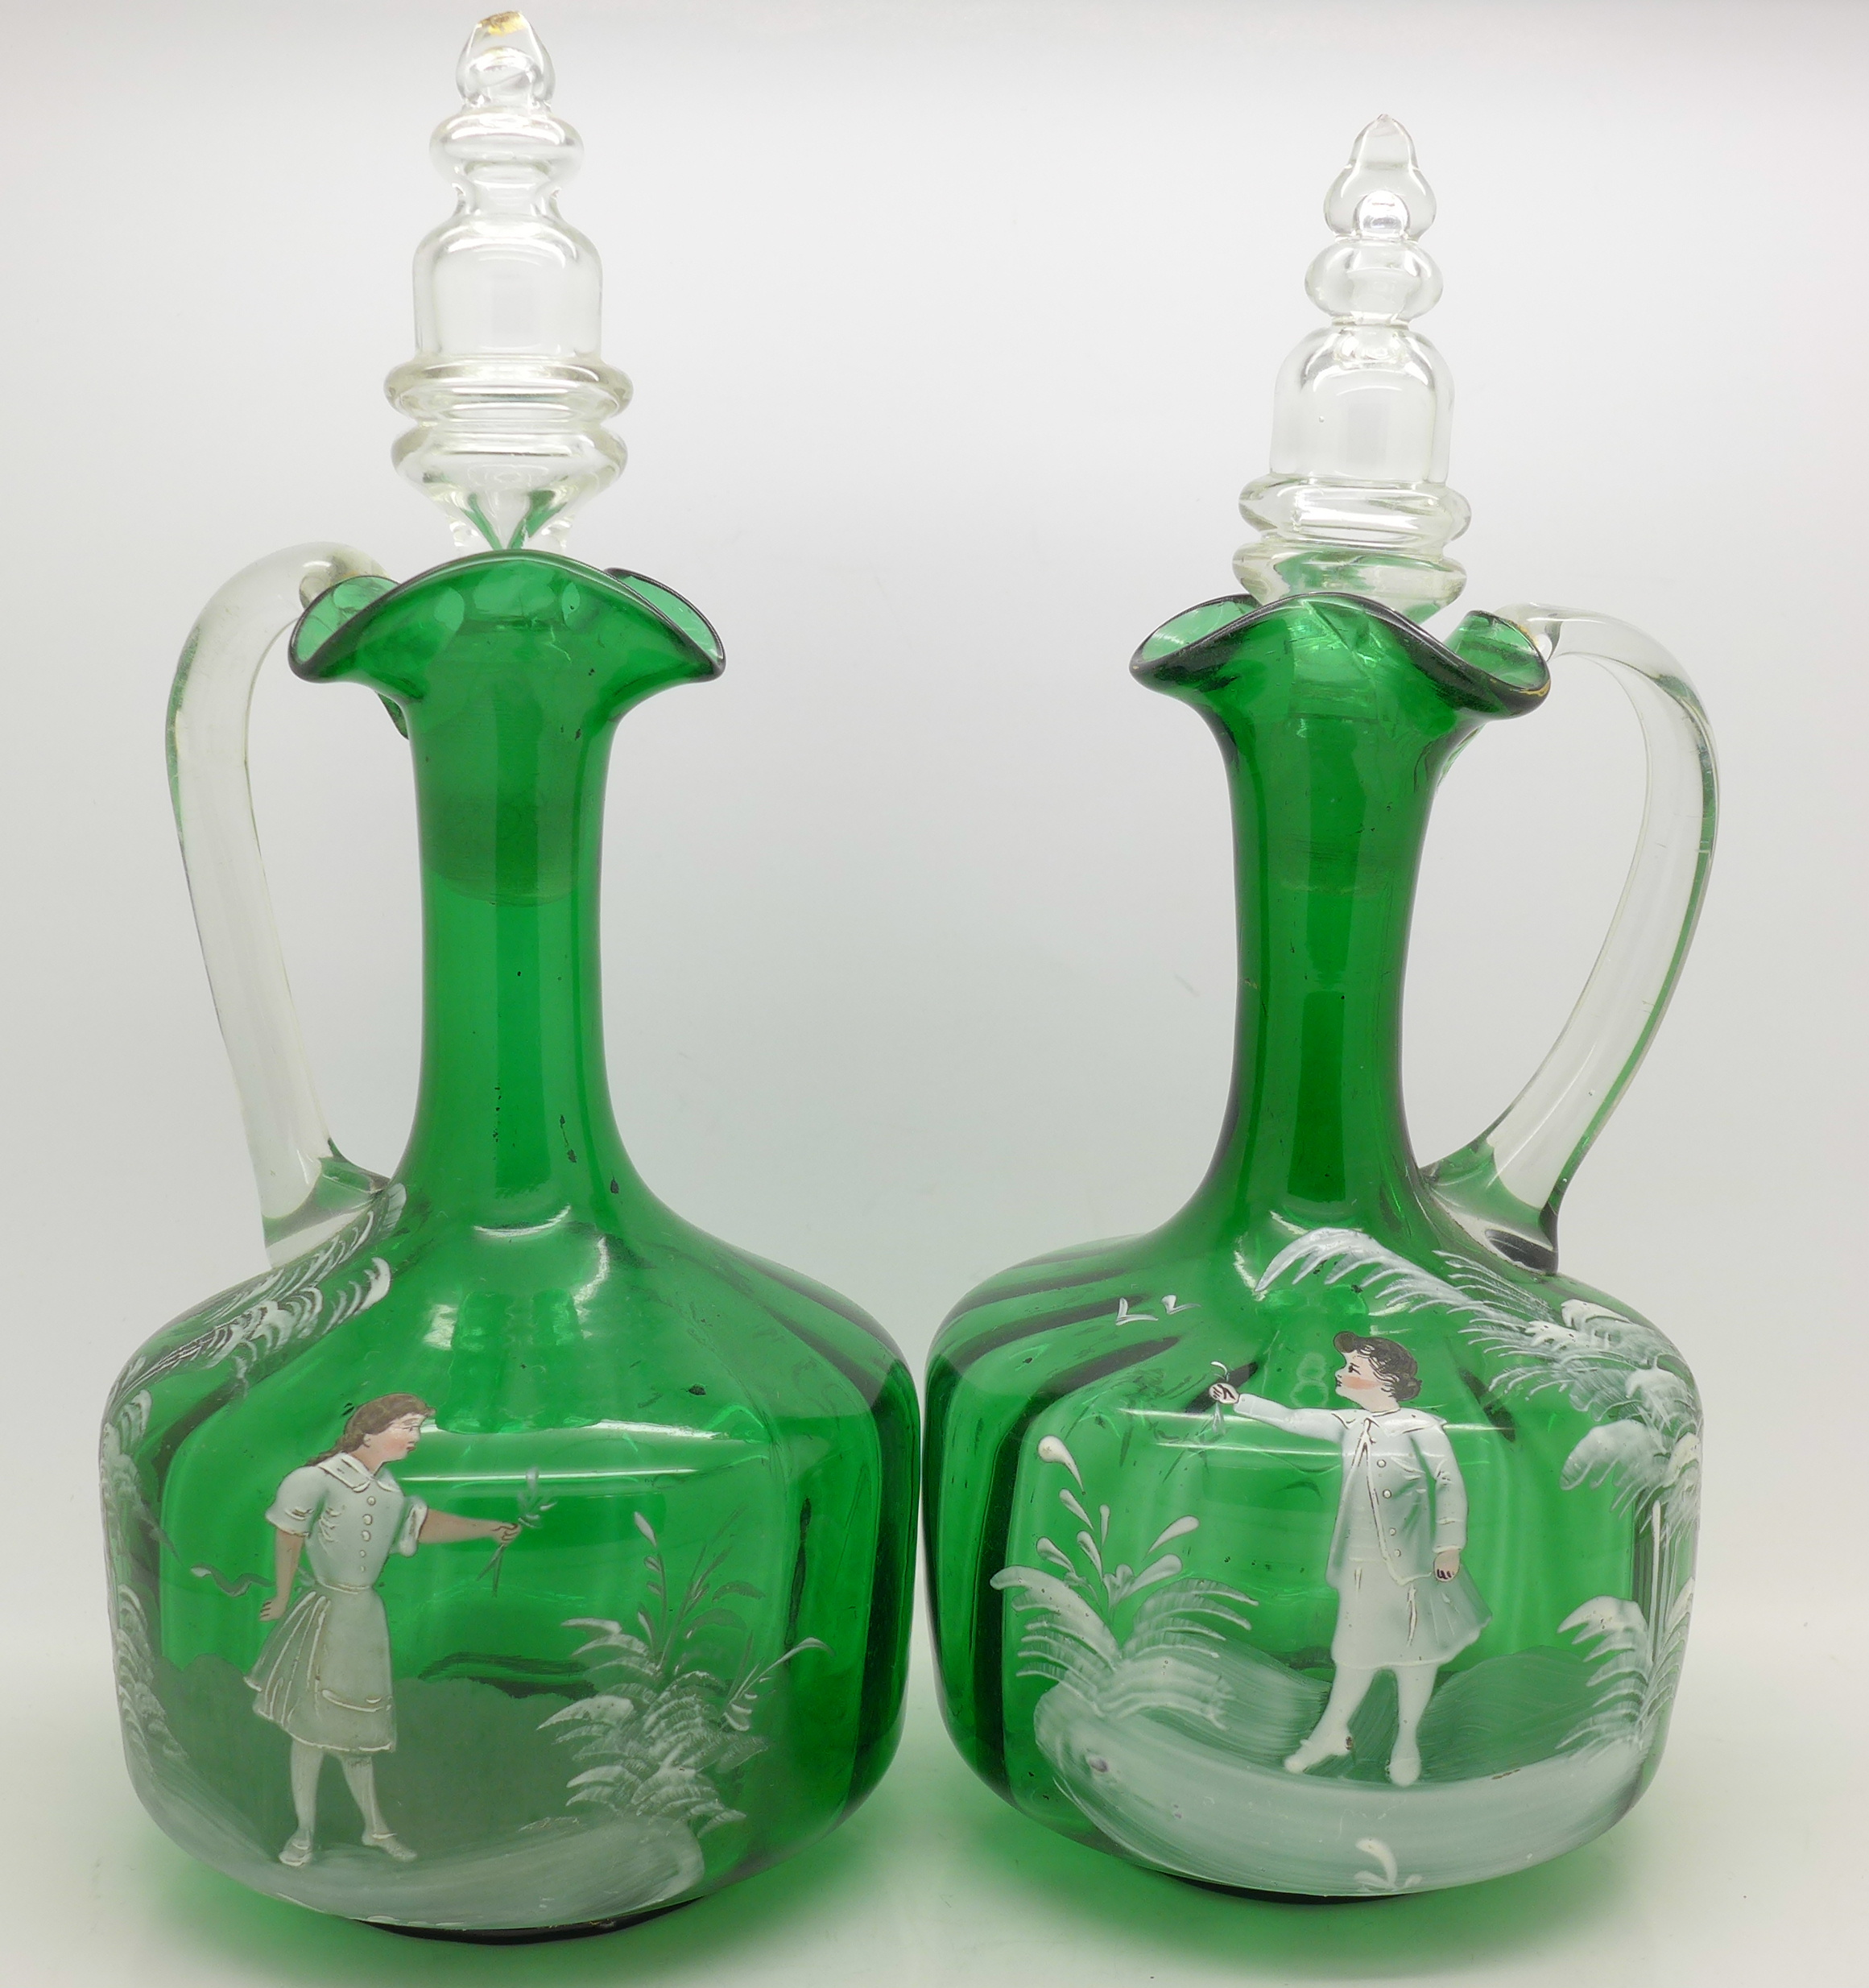 Lot 603 - A pair of green glass Mary Gregory jugs with stoppers